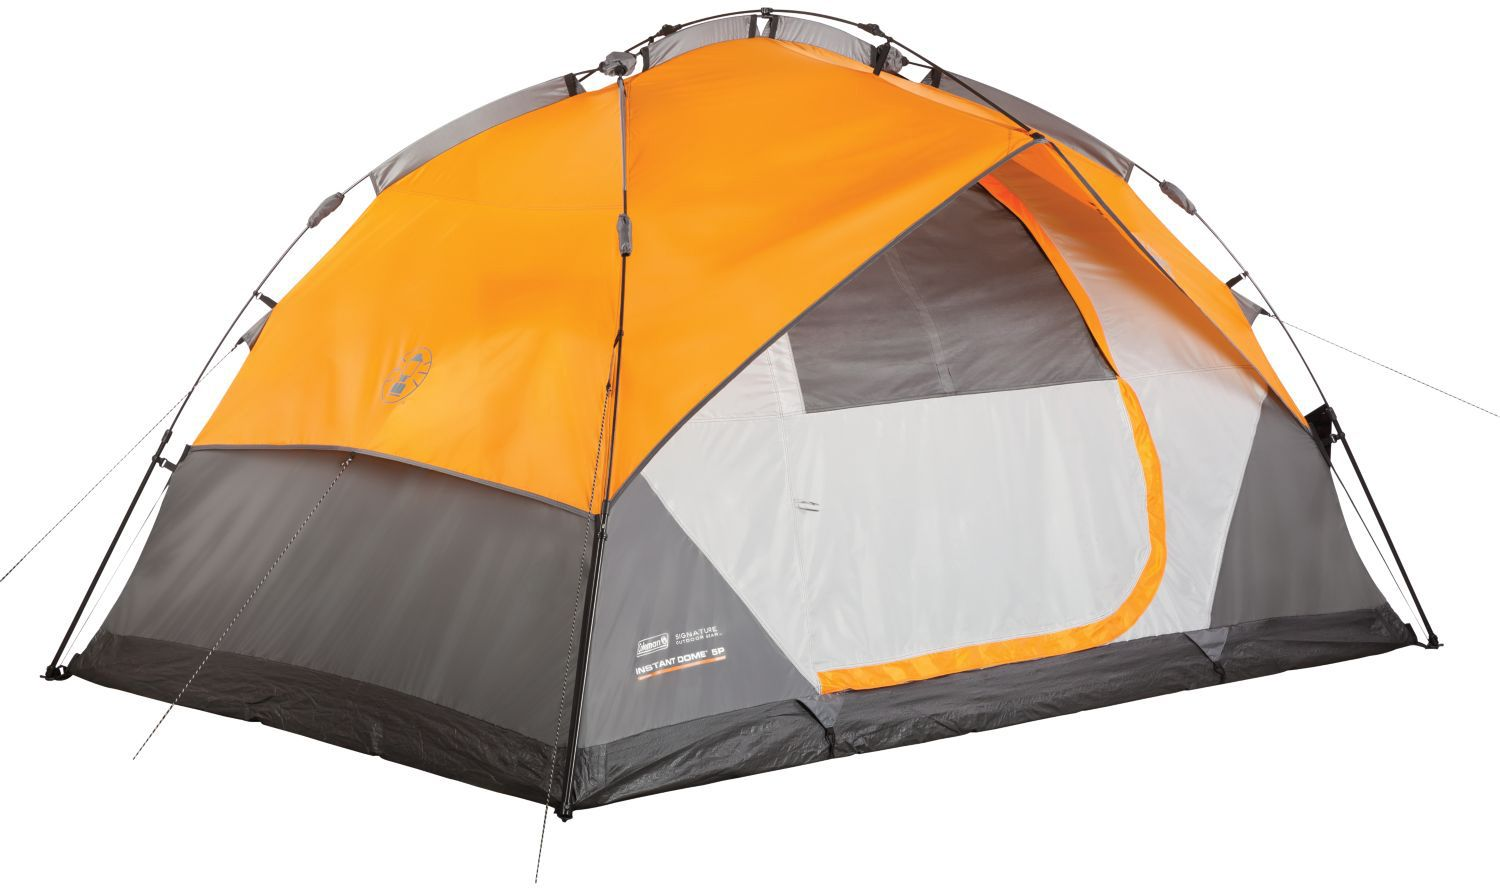 noImageFound ???  sc 1 st  DICKu0027S Sporting Goods & Coleman Instant Dome 5 Person Tent with Integrated Fly | DICKu0027S ...